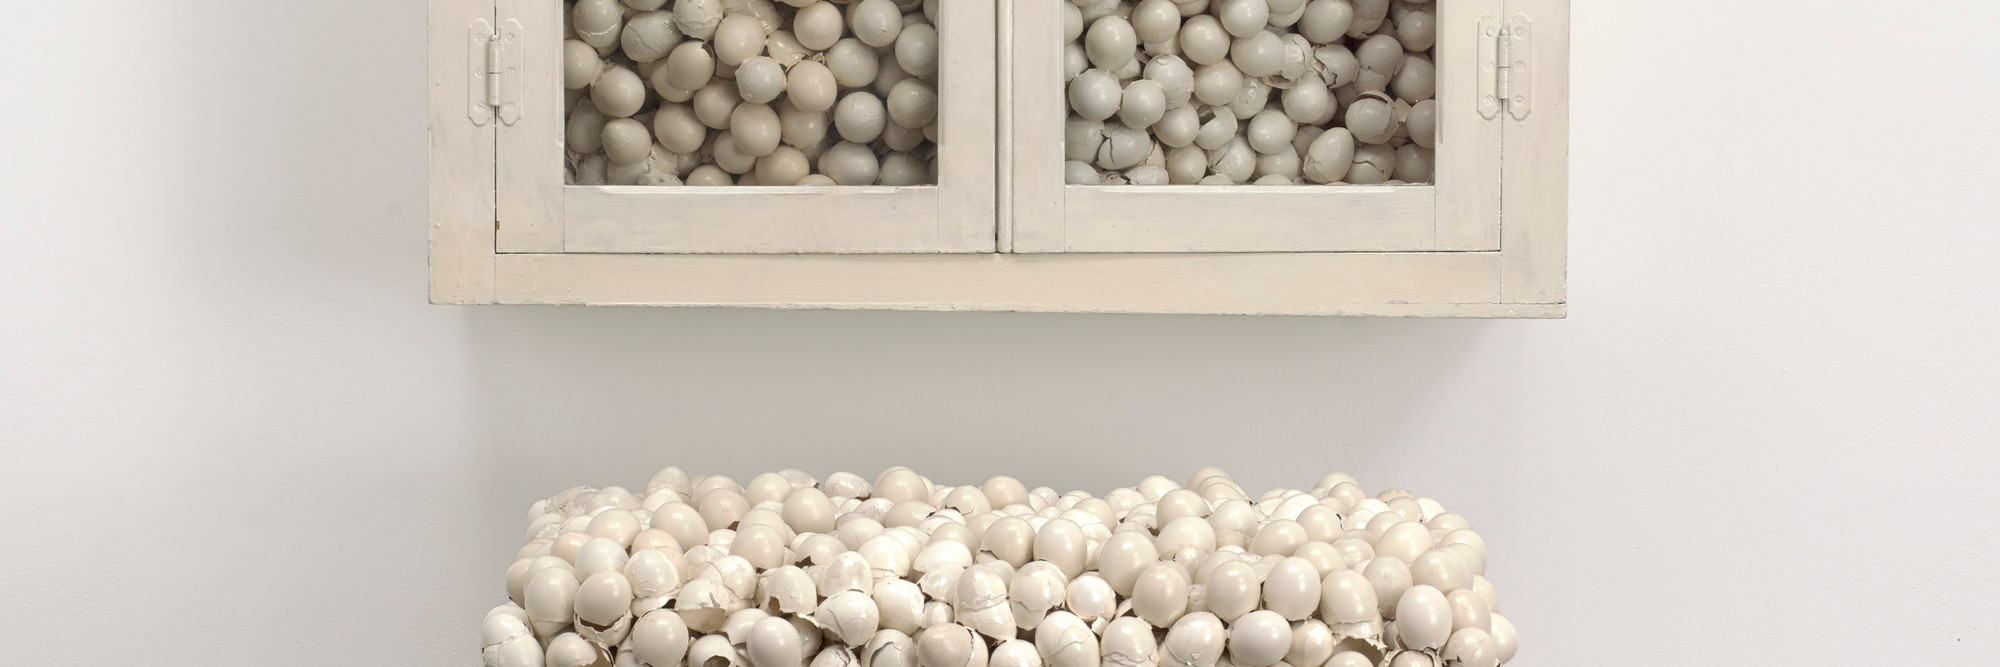 Marcel Broodthaers. Armoire blanche et table blanche (White Cabinet and White Table). 1965. Painted cabinet, table, and eggshells; cabinet 33 7/8 × 32 1/4 × 24 1/2″ (86 × 82 × 62 cm), table 41 × 39 3/8 × 15 3/4″ (104 × 100 × 40 cm). The Museum of Modern Art, New York. Fractional and promised gift of Jo Carole and Ronald S. Lauder. © 2015 Estate of Marcel Broodthaers/Artists Rights Society (ARS), New York/SABAM, Brussels